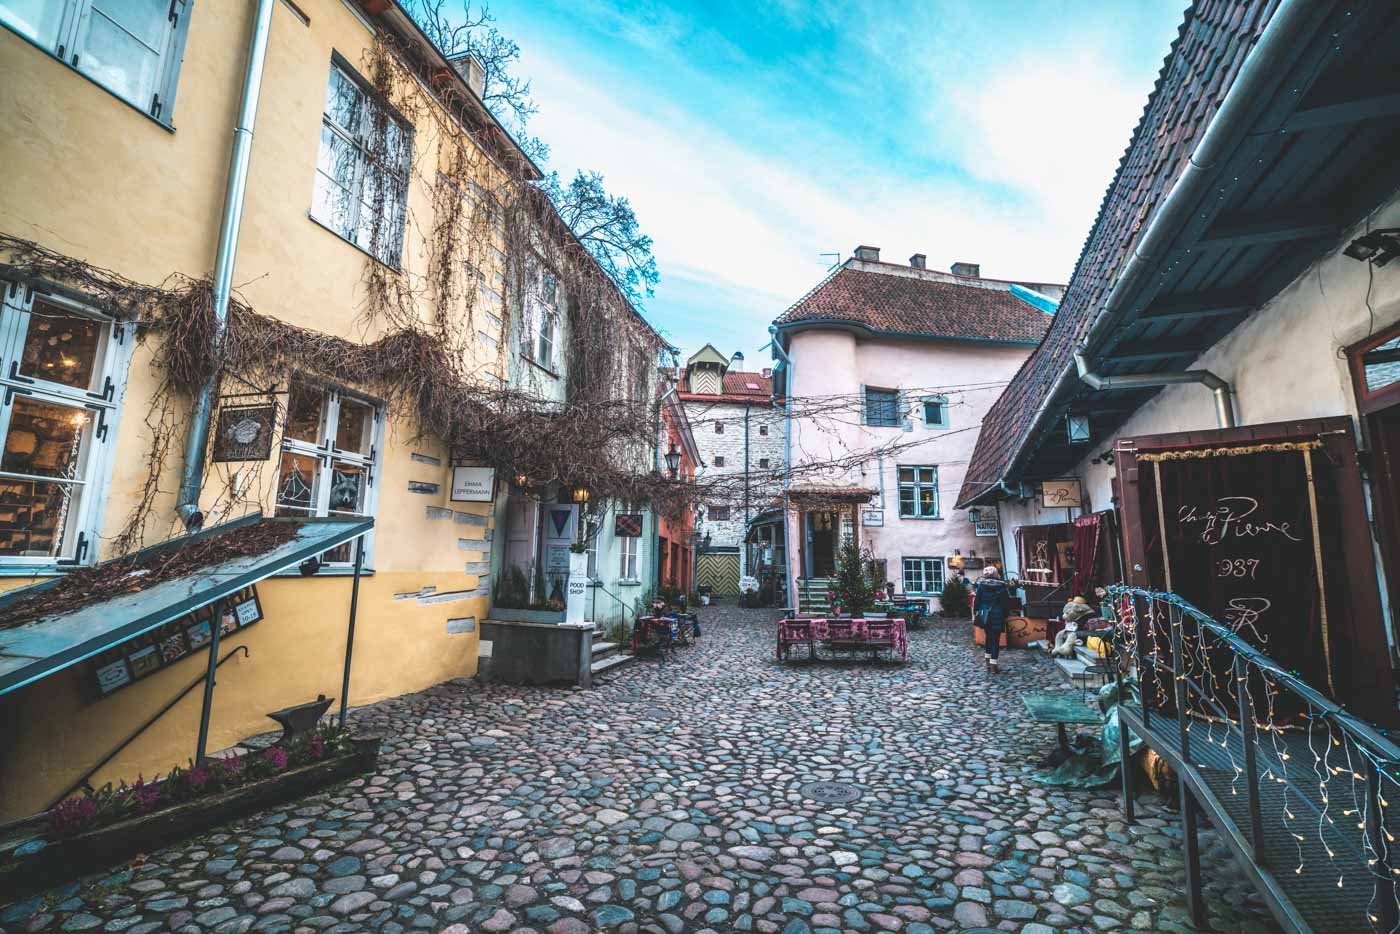 Things to do in Tallinn: Master's Courtyard, Old Town Tallinn, Estonia